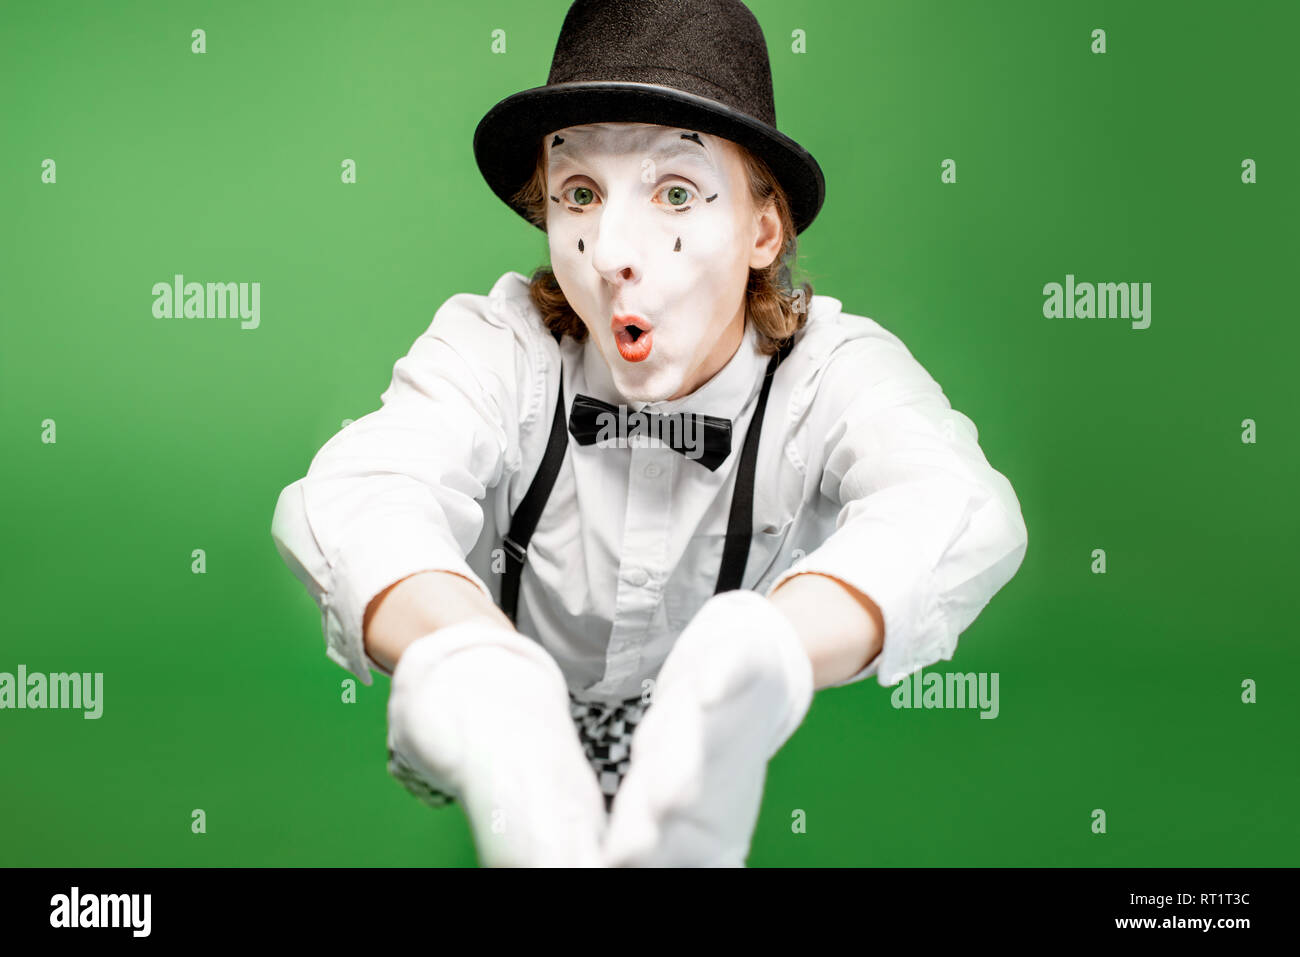 Portrait of an actor as a pantomime with white facial makeup posing with expressive emotions isolated on the green background - Stock Image